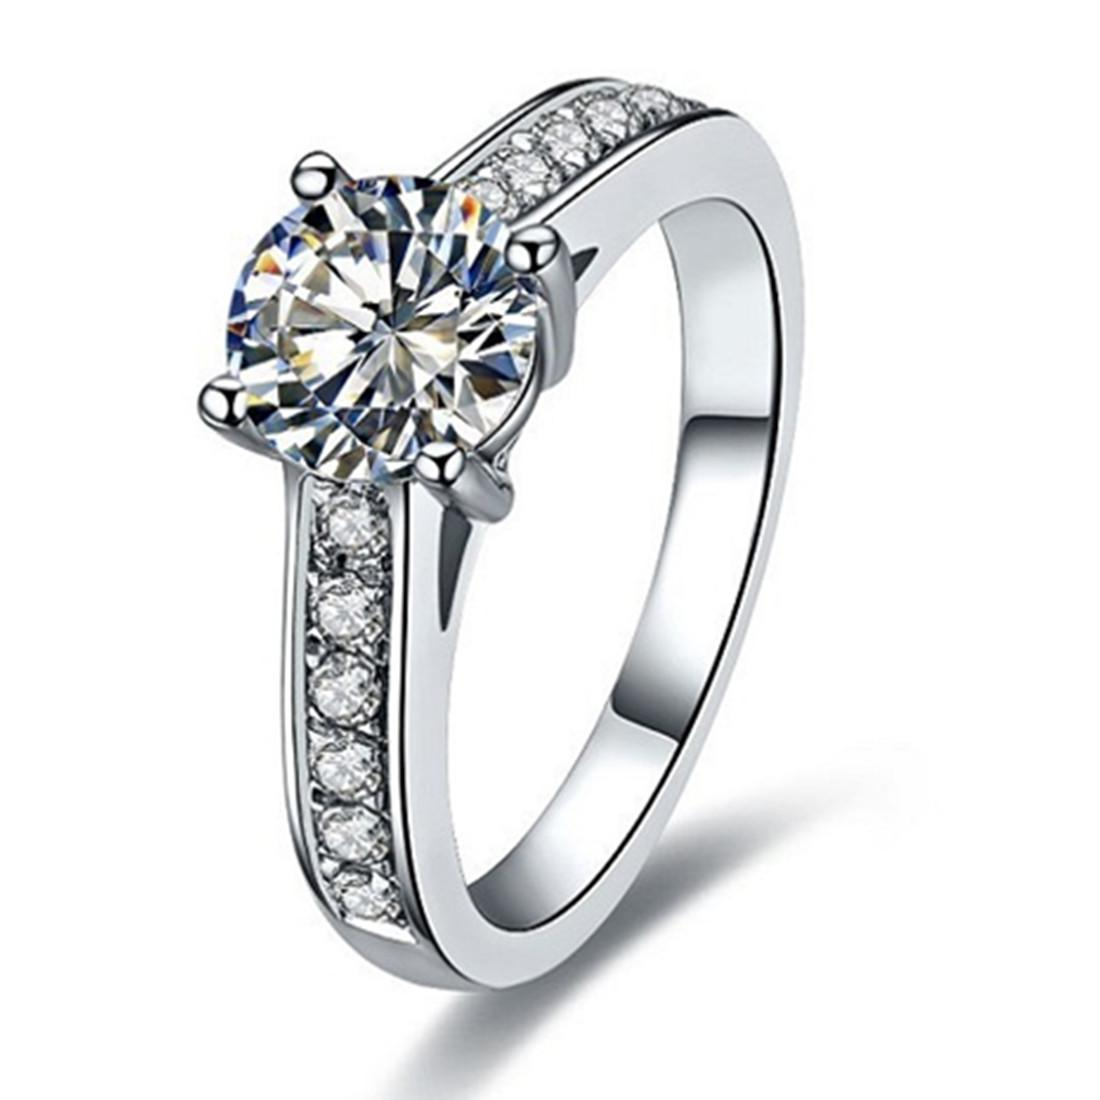 1CT Sterling Silver Jewelry C Brand Custom Copy Quality Ring for Women NSCD Diamond Ring Engagement Gift Semi Mount 18K White Gold Plated